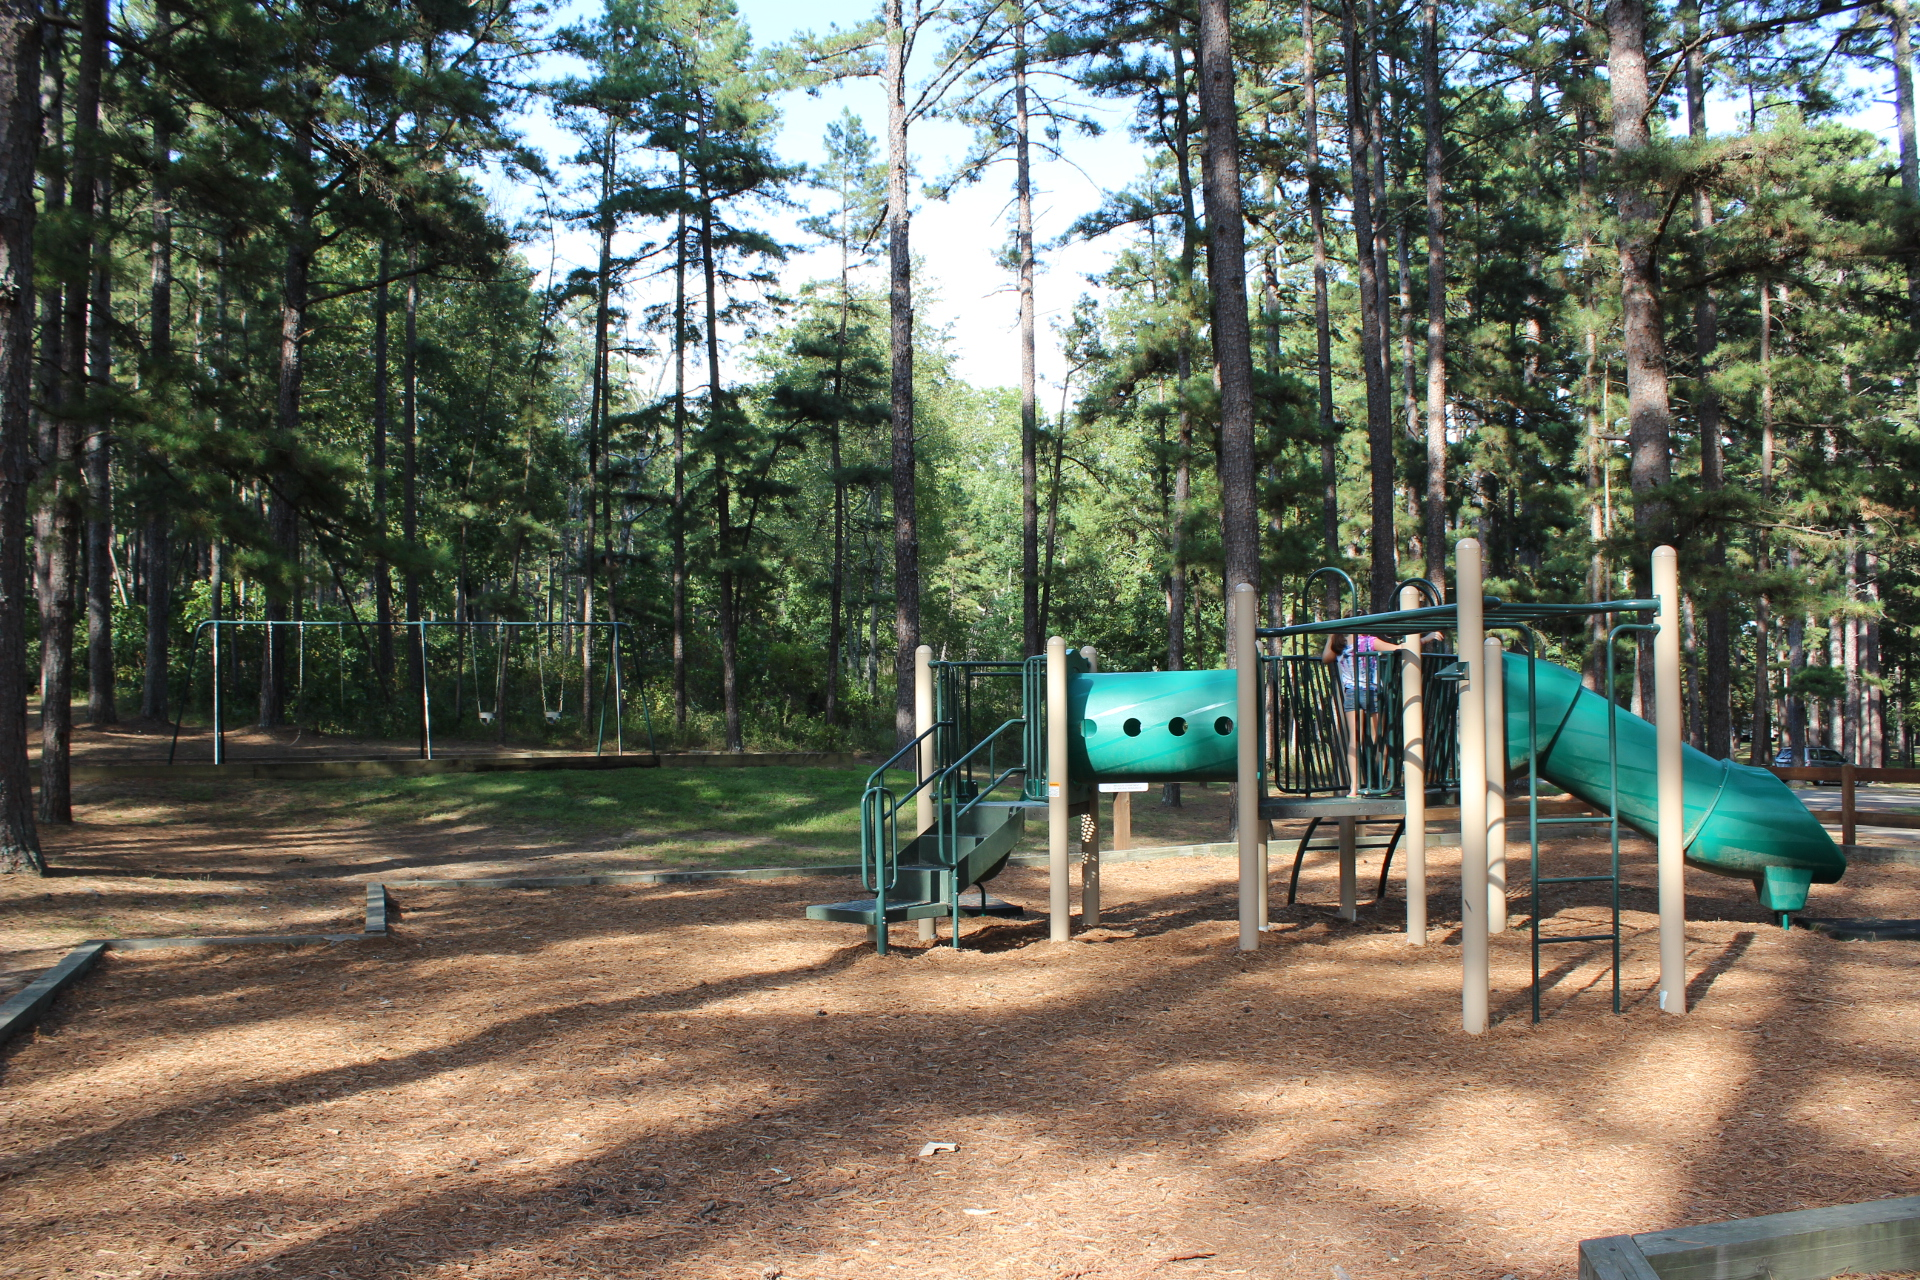 playground equipment with slide in a shaded setting